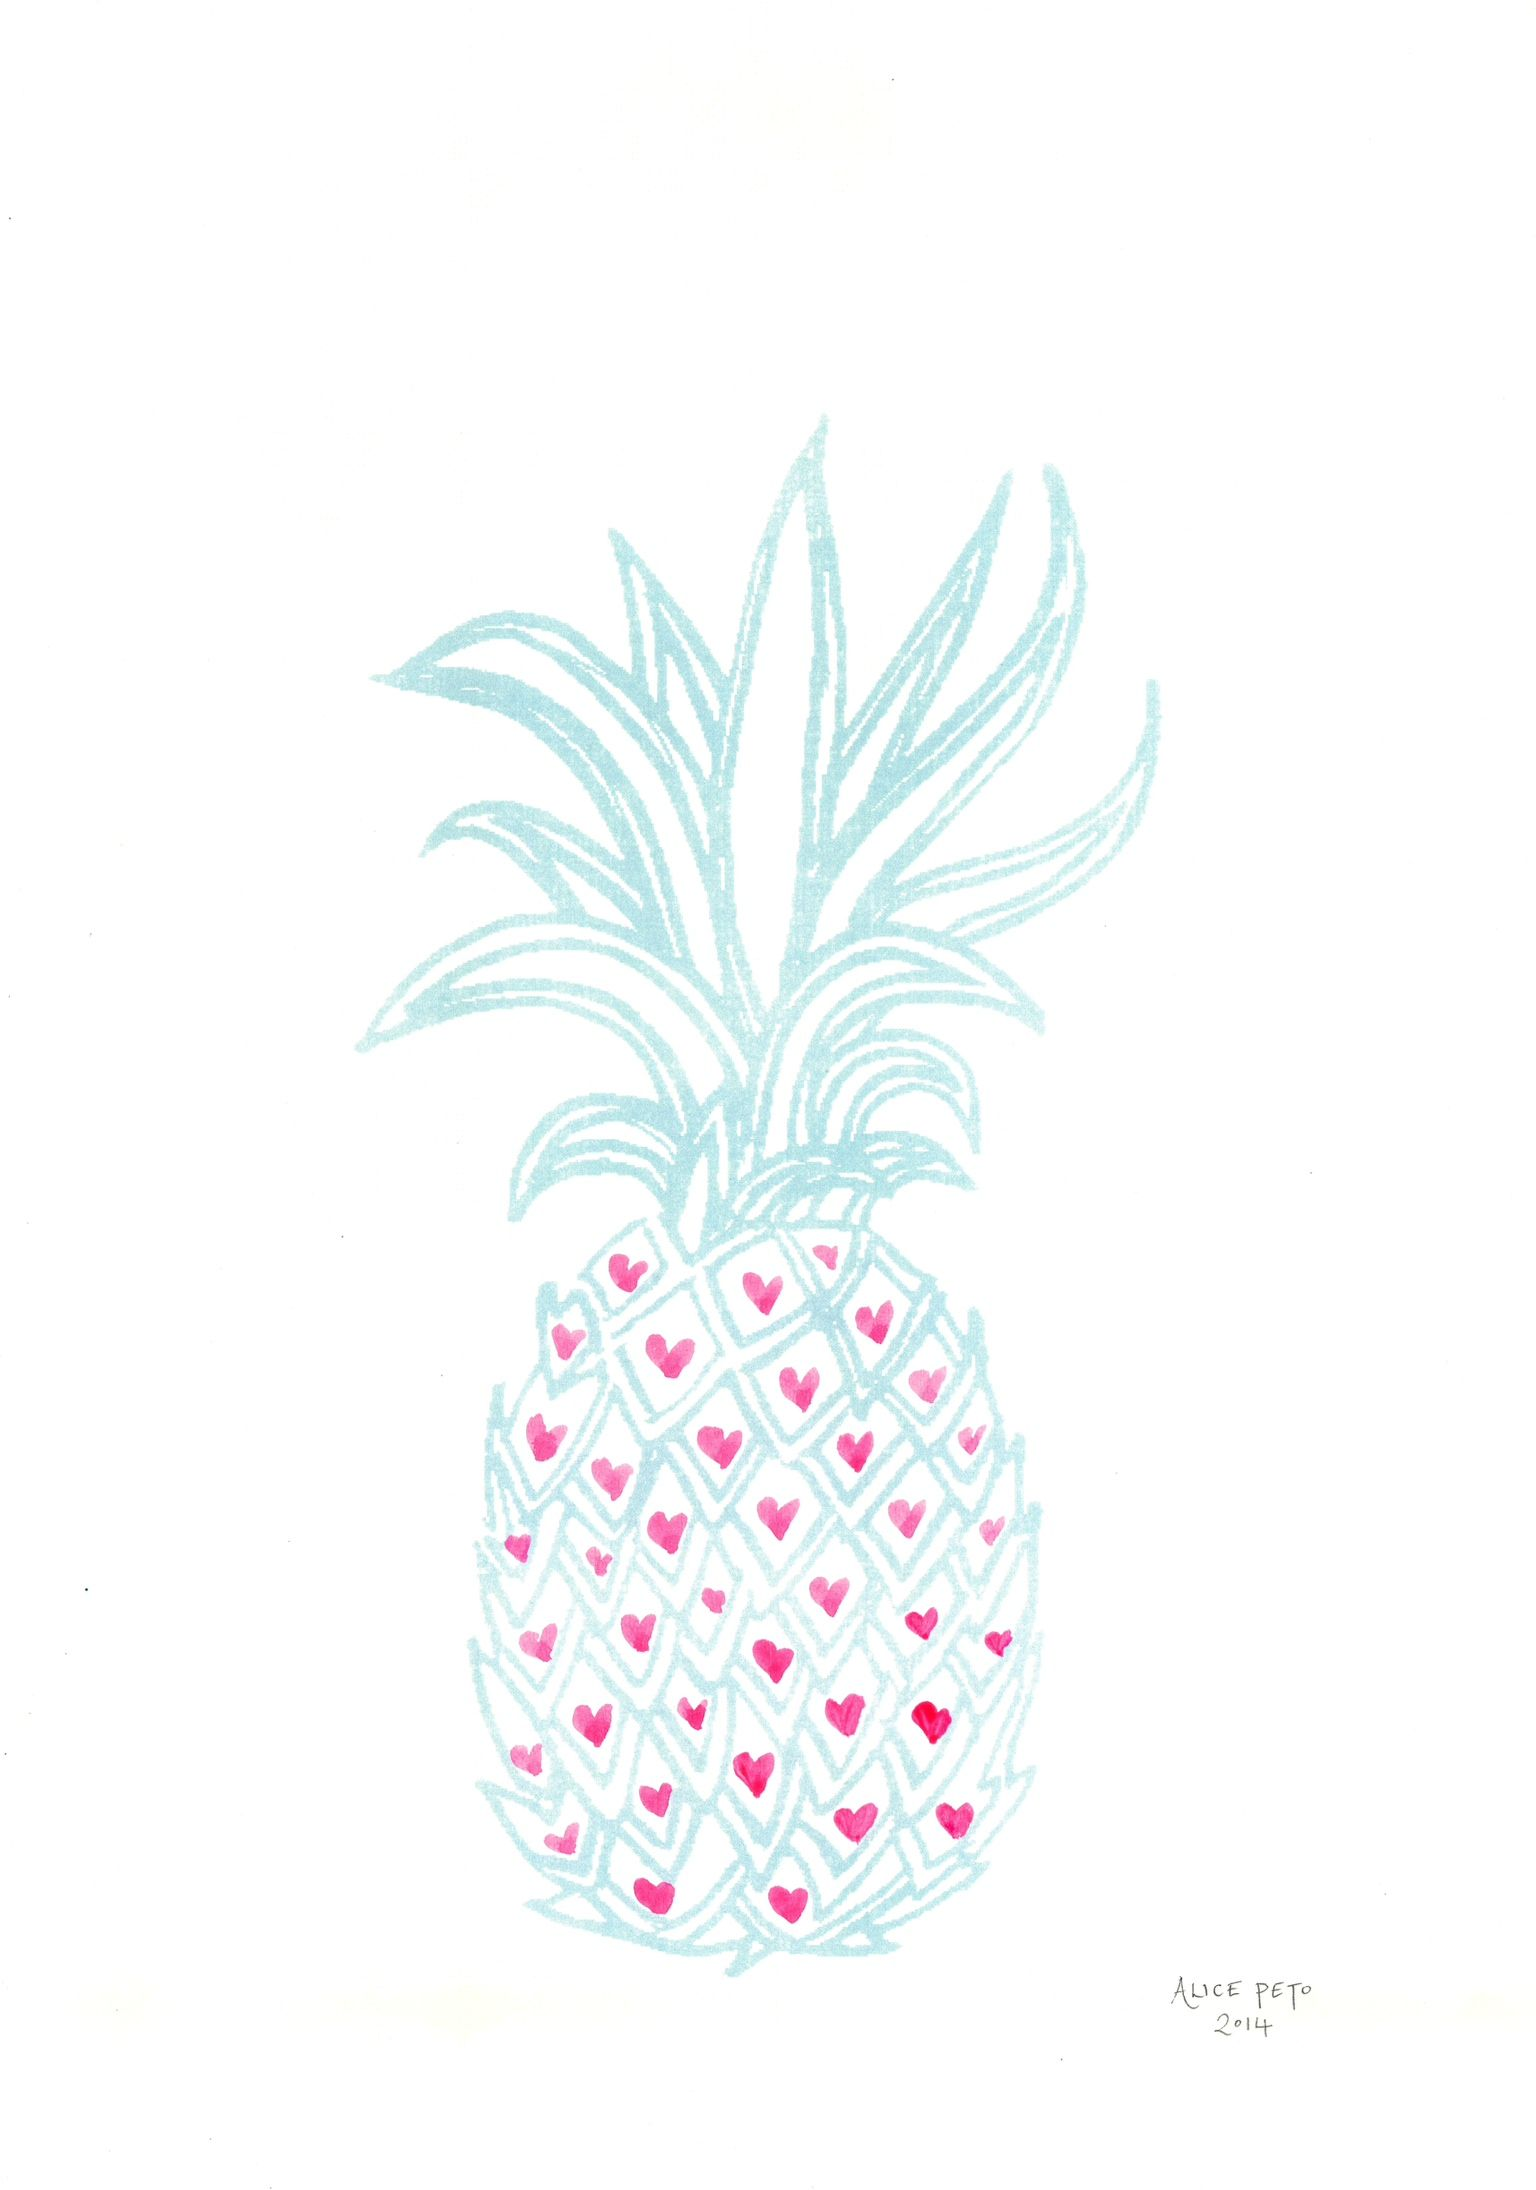 As I work from home I love surrounding myself with inspiring objects, like this pineapple print by Alice Peto.